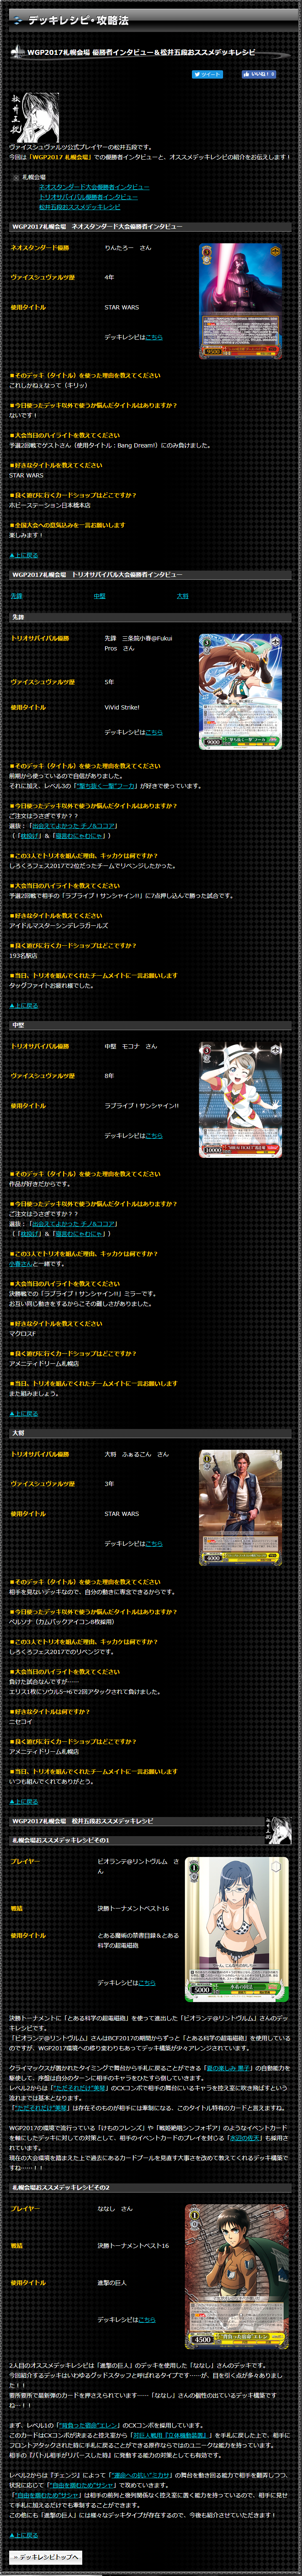 WGP_sapporo01.png